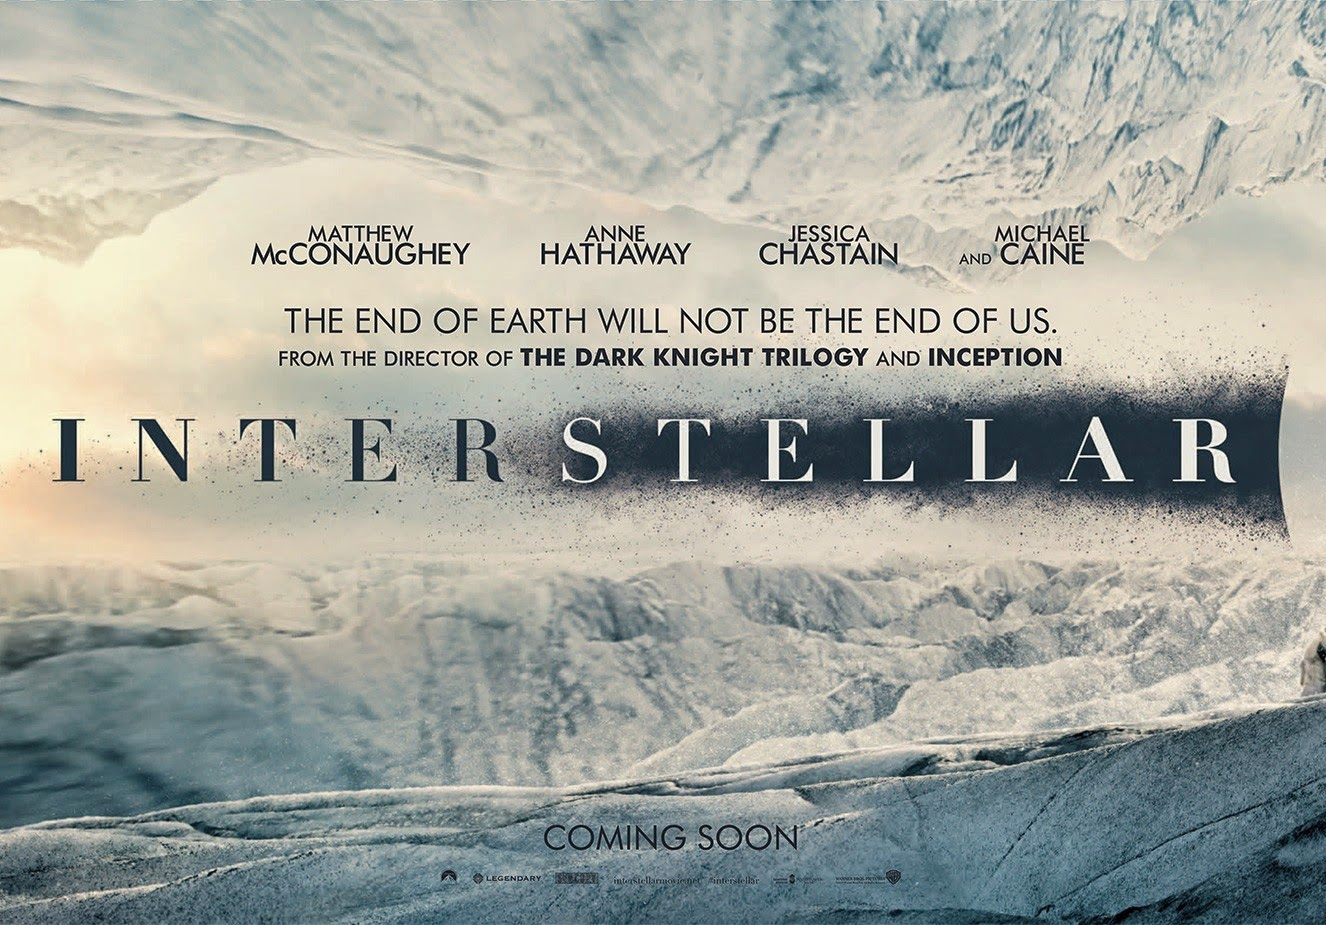 Interstellar: Final Preview